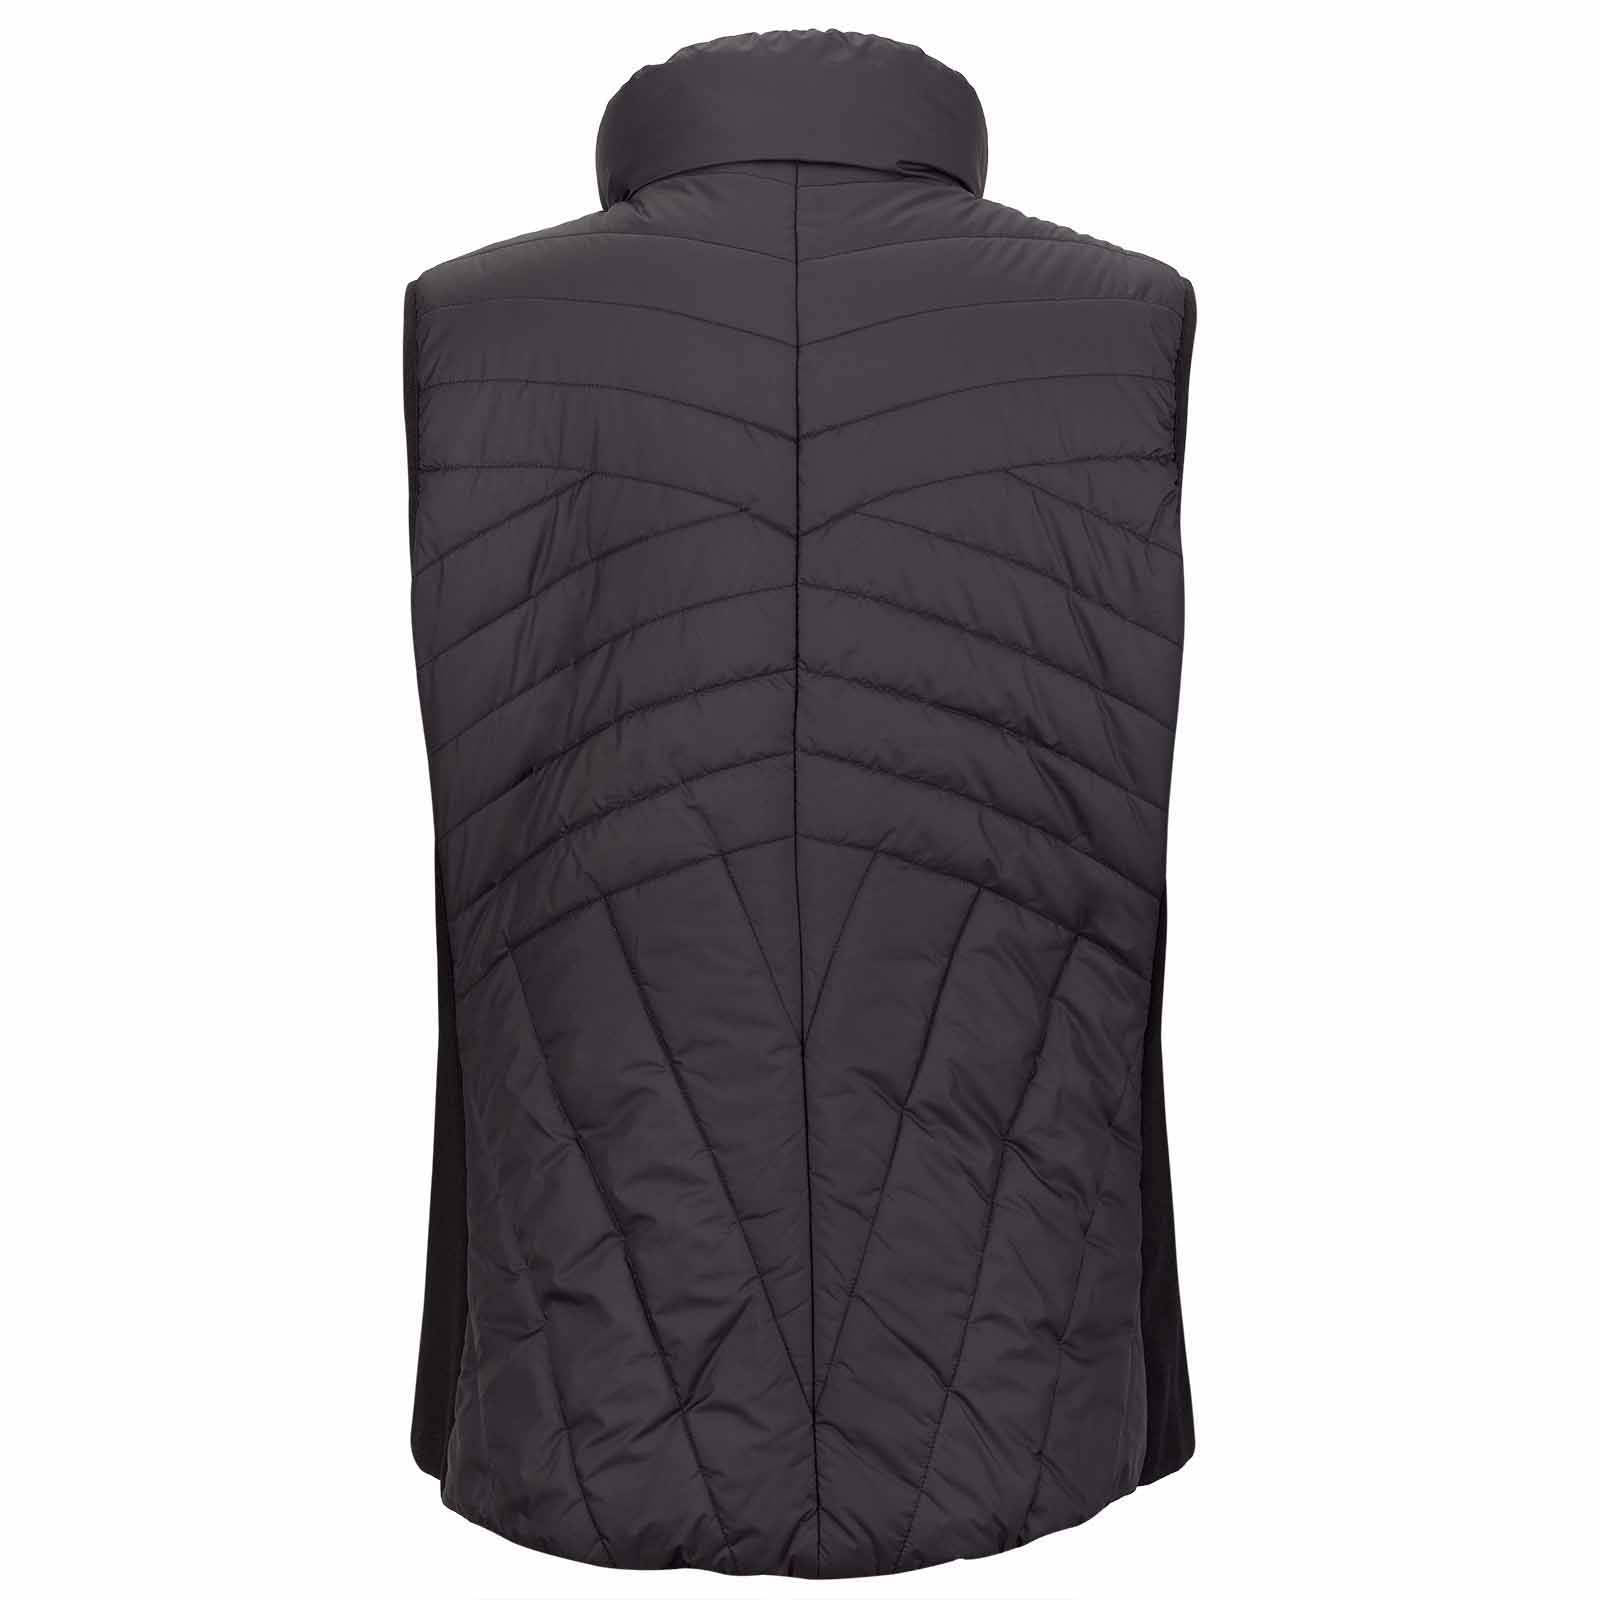 Damen Windprotection Resort Wear Golfweste mit seitlichen Stretchelementen